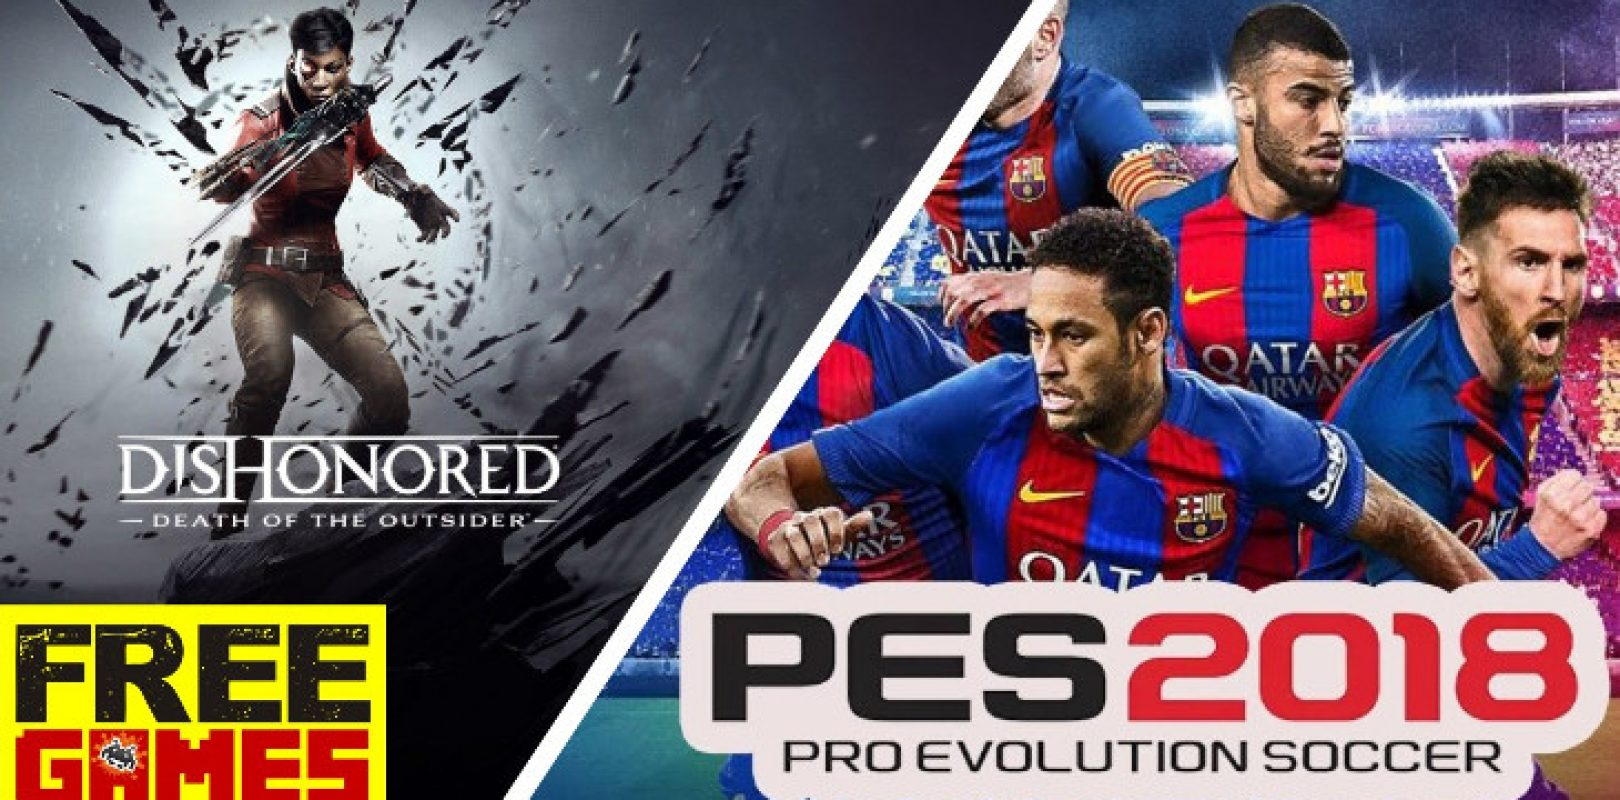 Pes 2018 Archives Sa Gamer Sony Ps4 Pro Evolution Soccer Premium Edition Free Games Vrydag Dishonored Death Of The Outsider